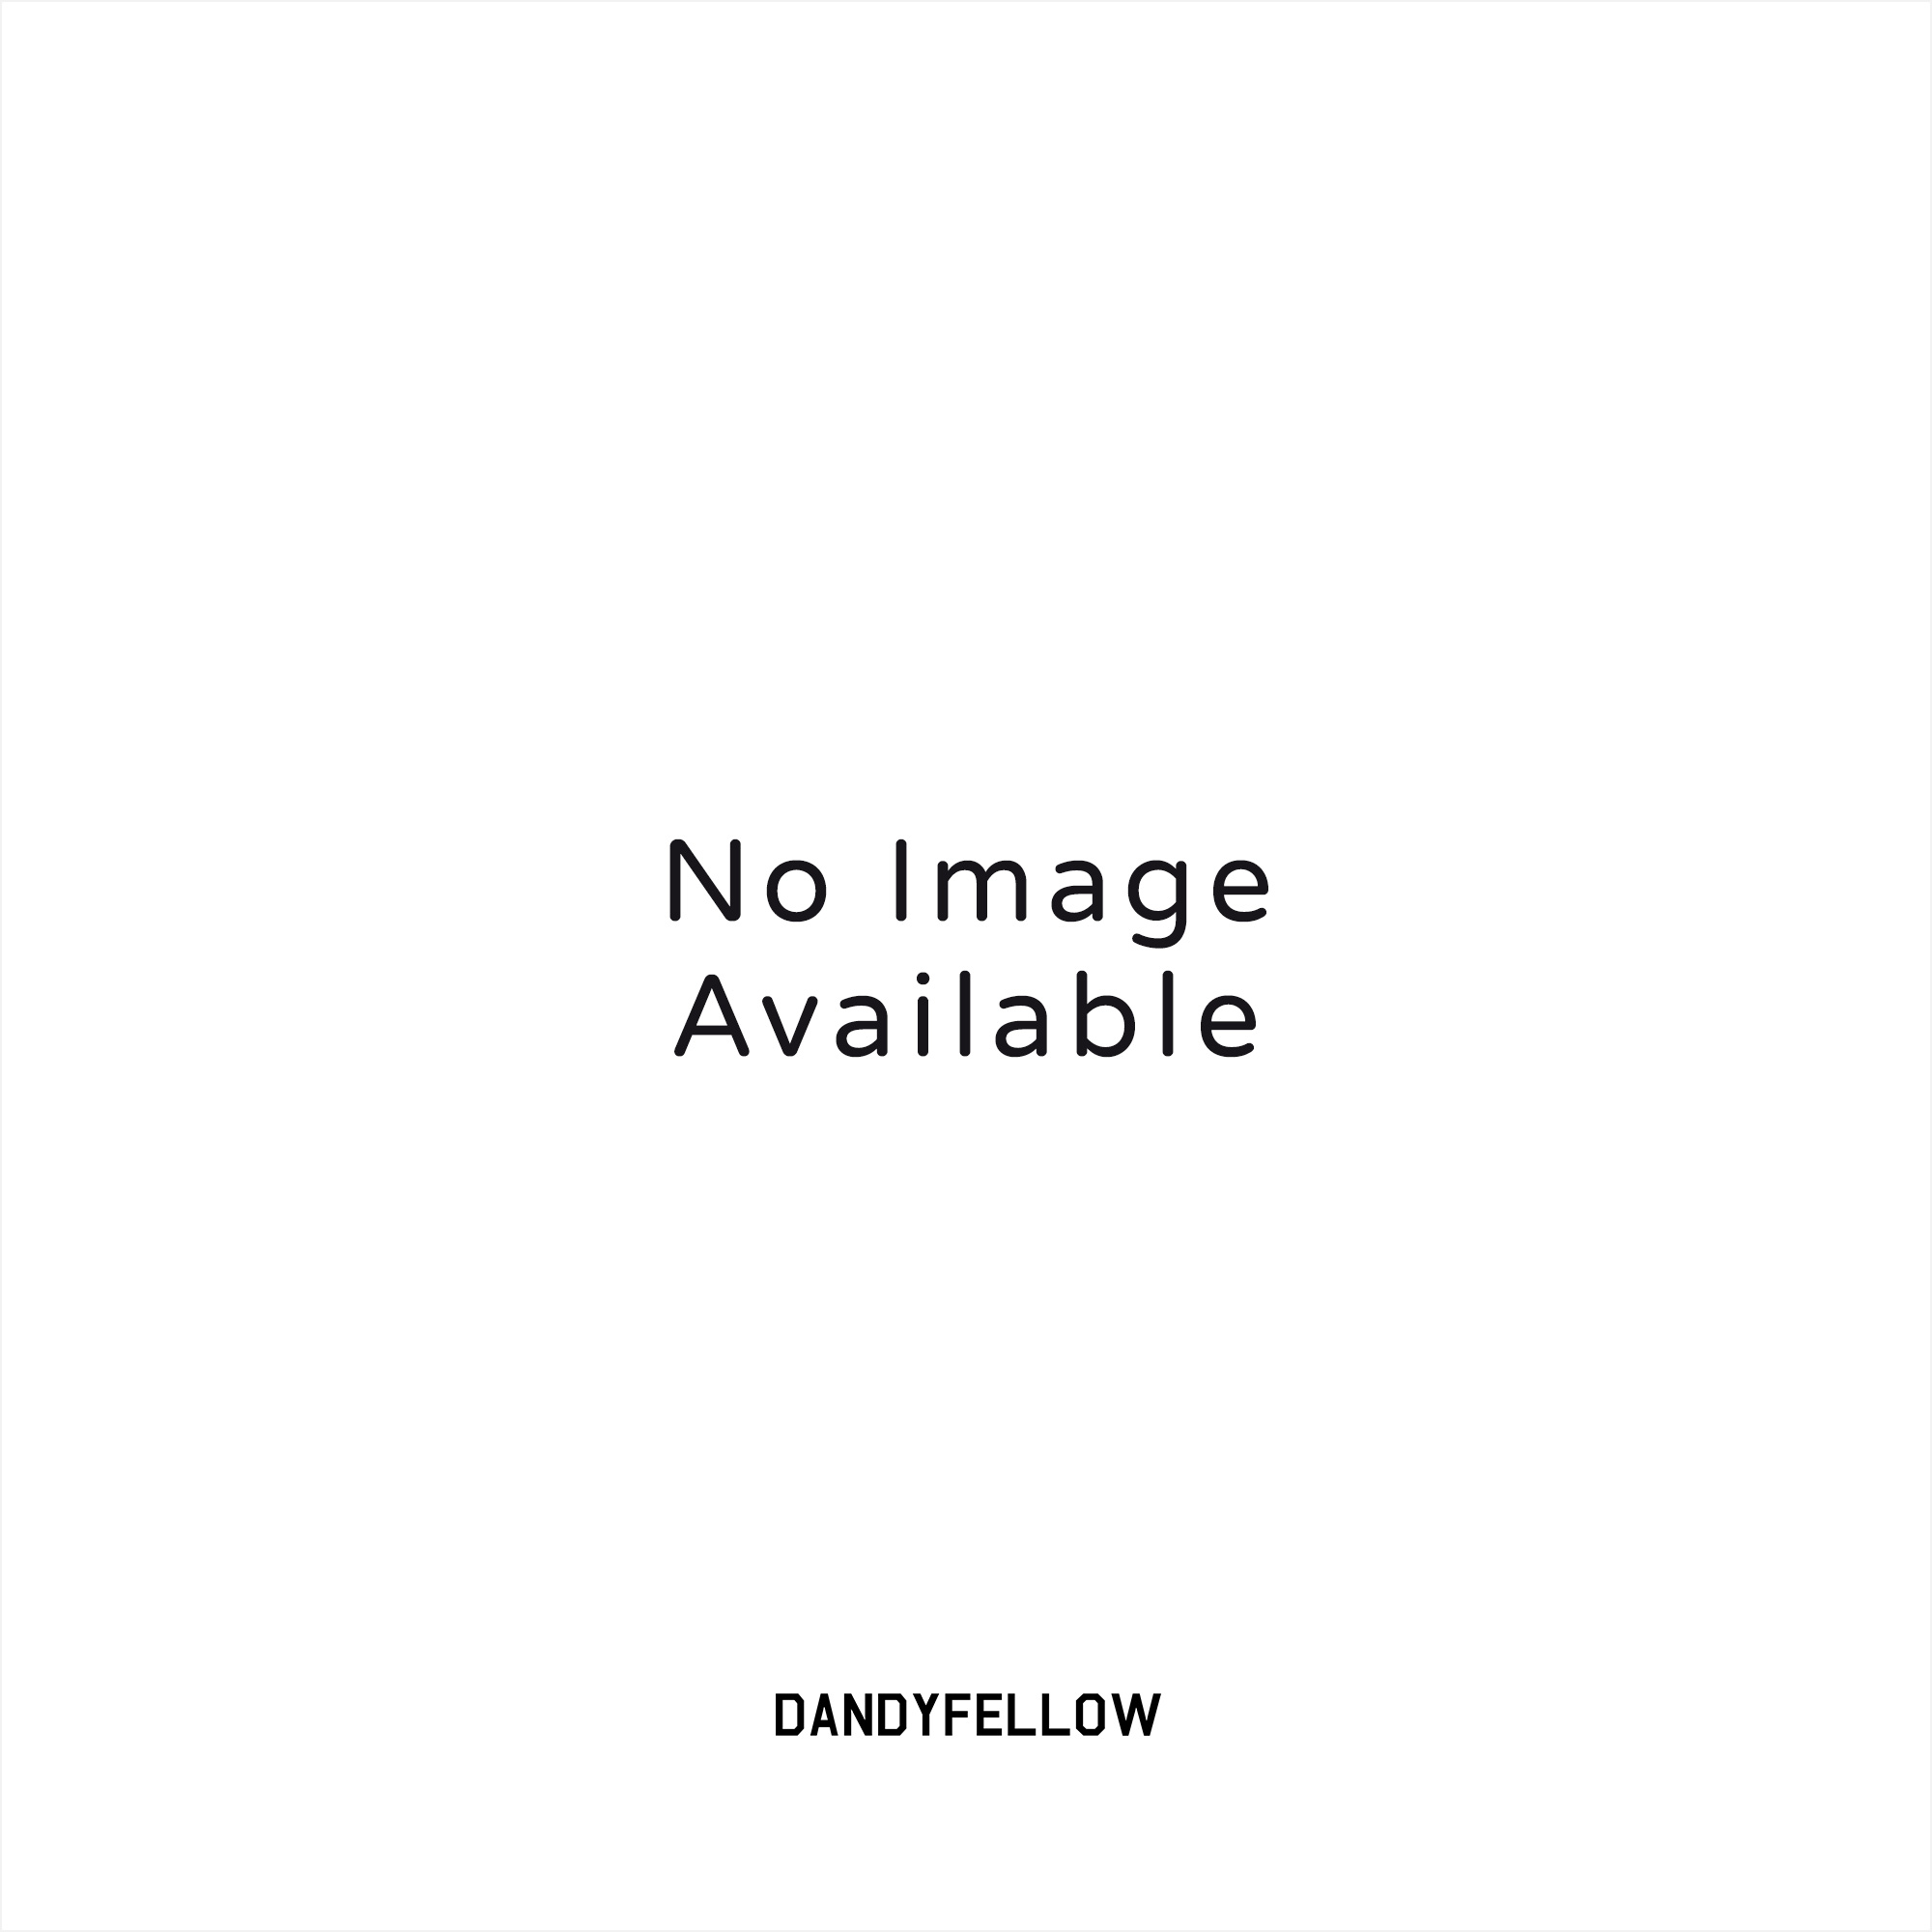 Nike Air Force 1  Just Do It  (White) at Dandy Fellow ac876d760